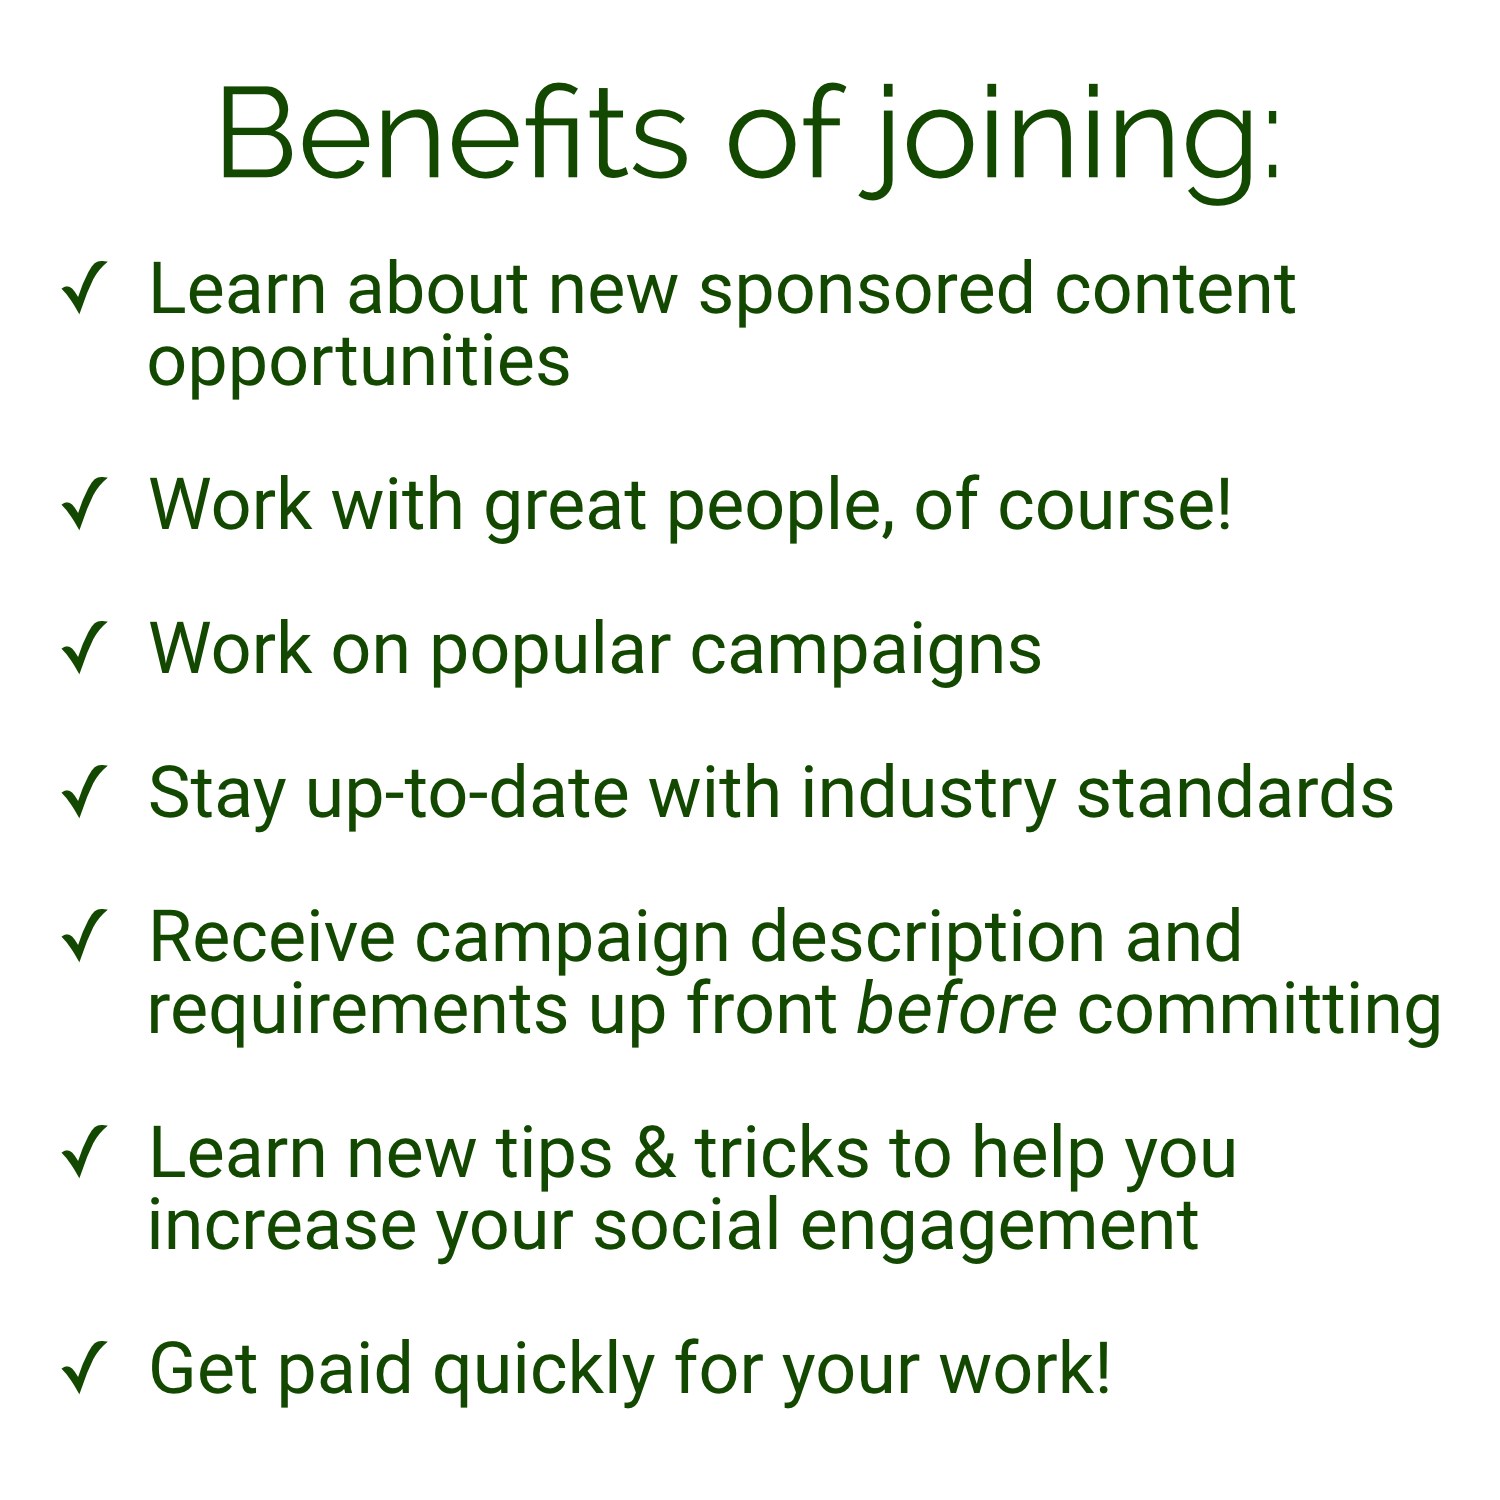 Benefits of joining the ReachOrb Influencer Network.